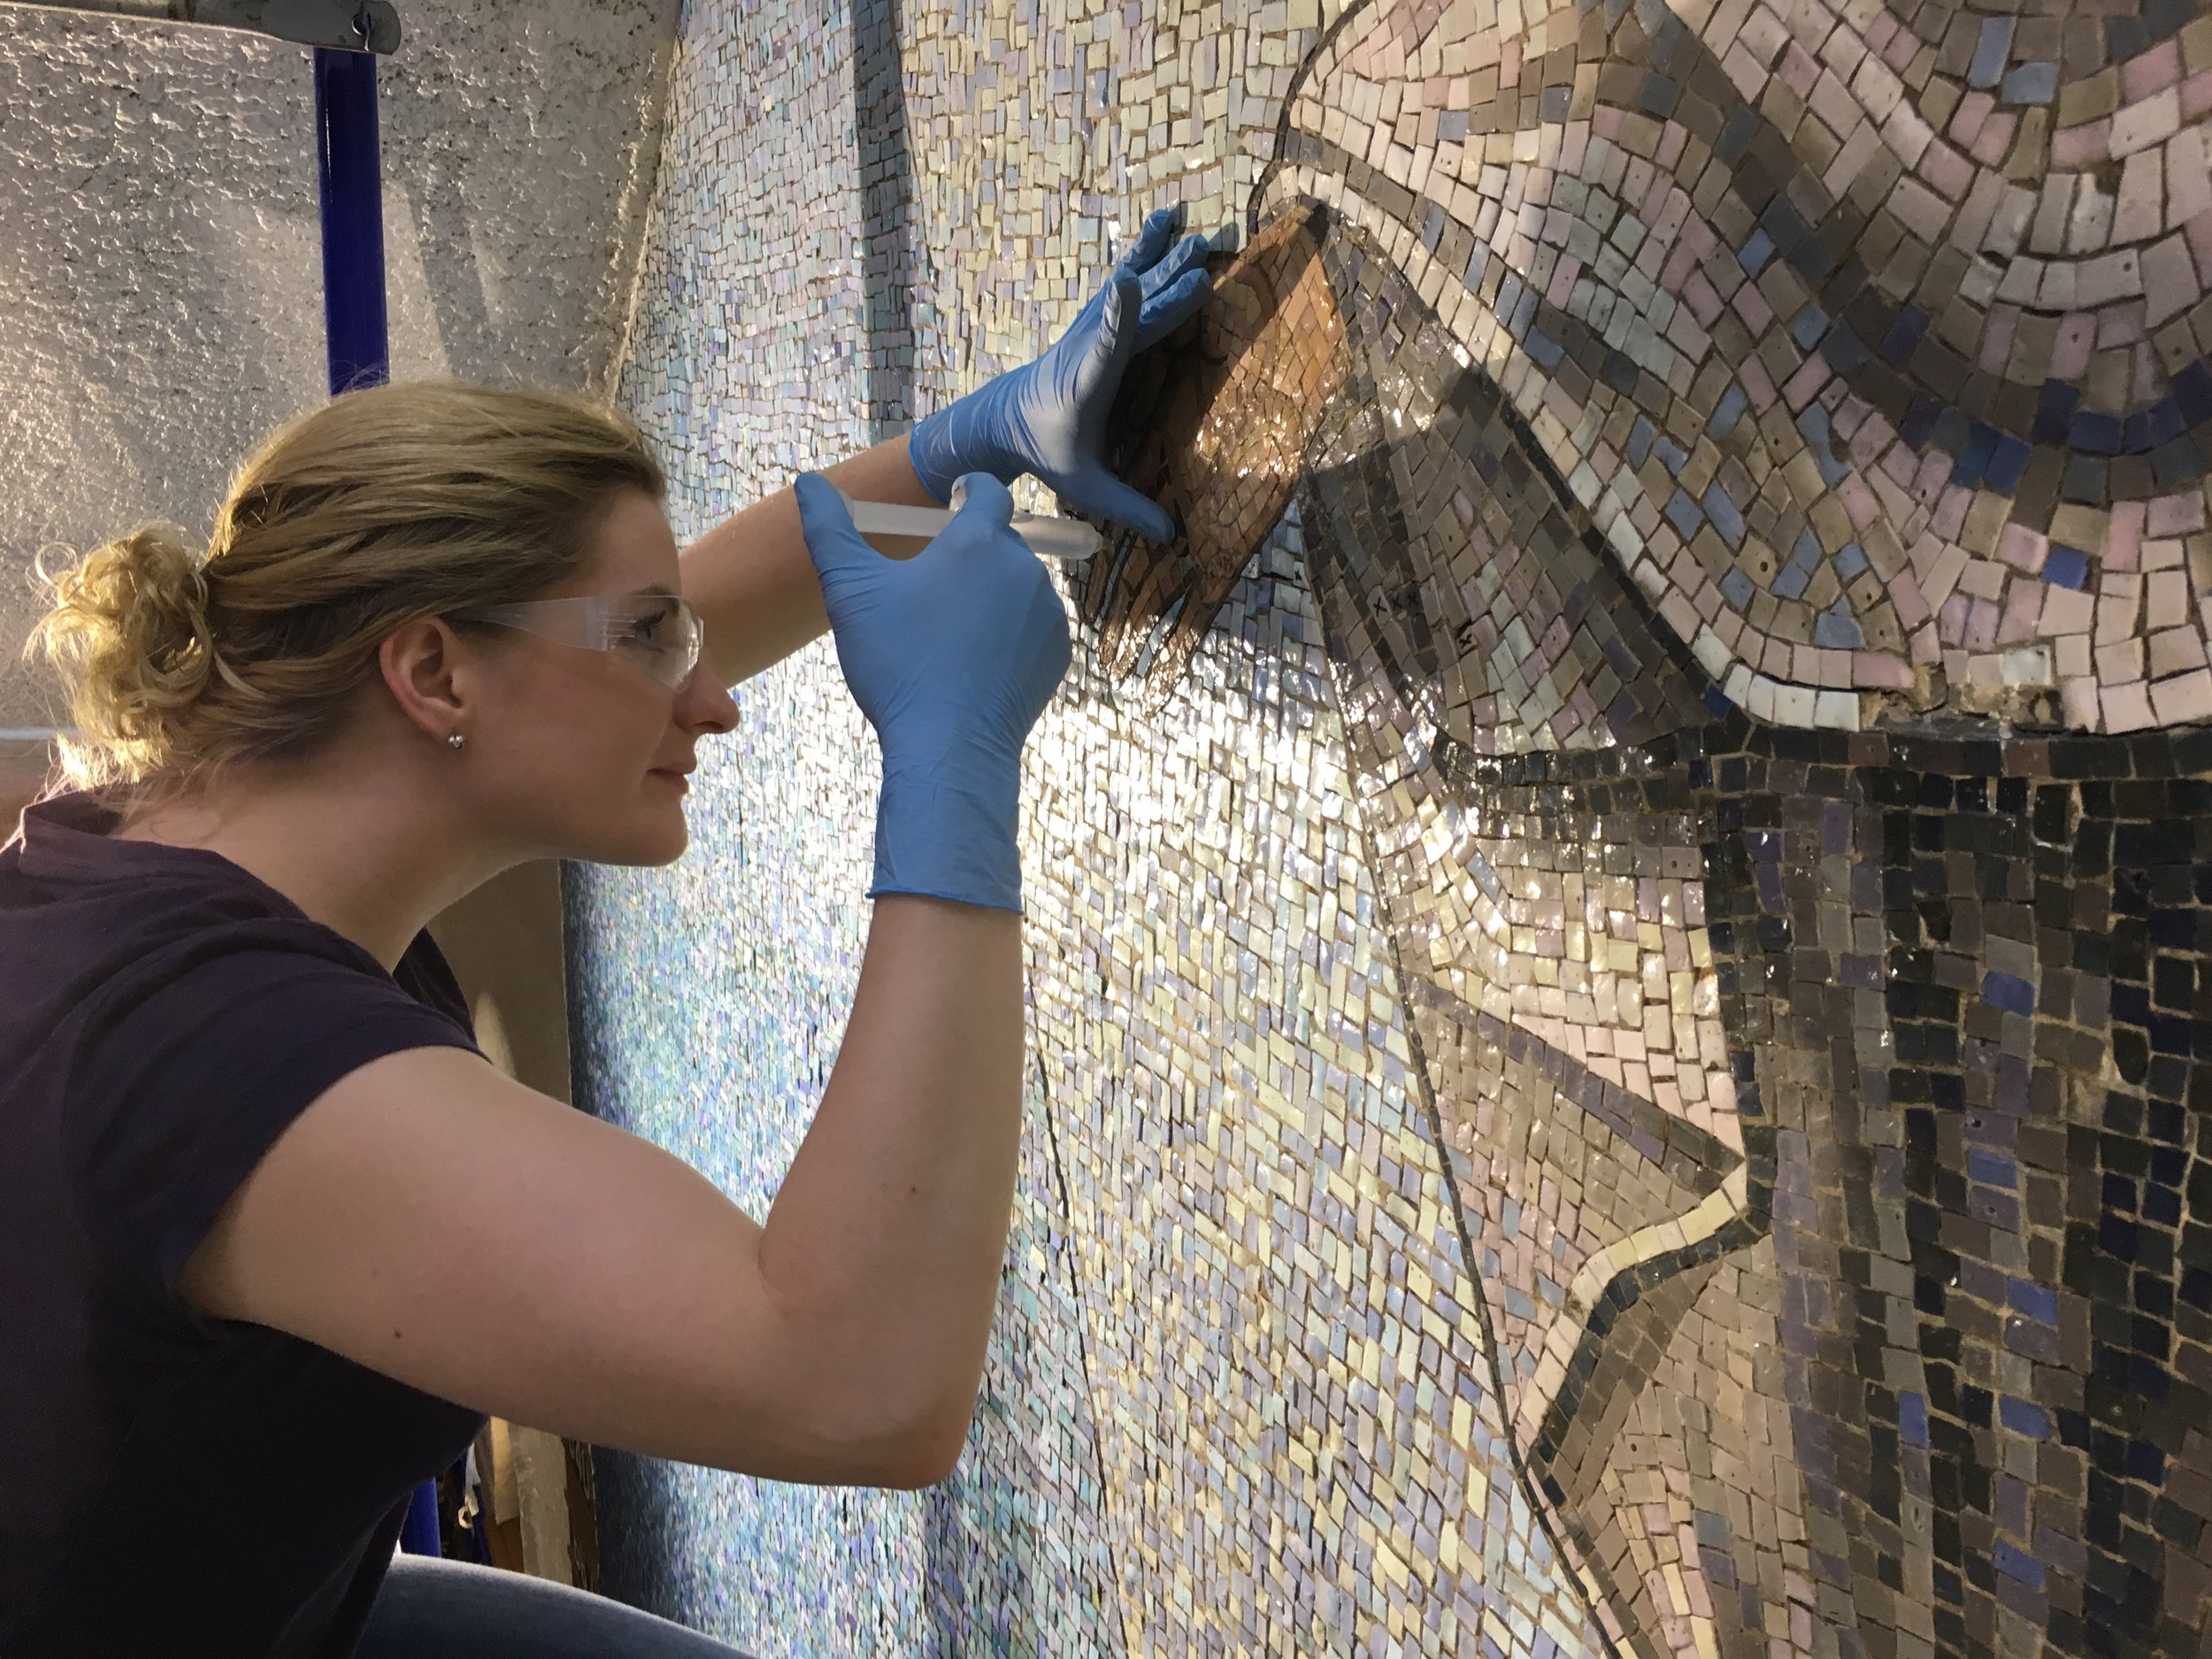 Callie, a conservator with  Art Restorations, Inc.  of Dallas, injects a stabilizer behind the loose tesserae on the Risen Christ mosaic.